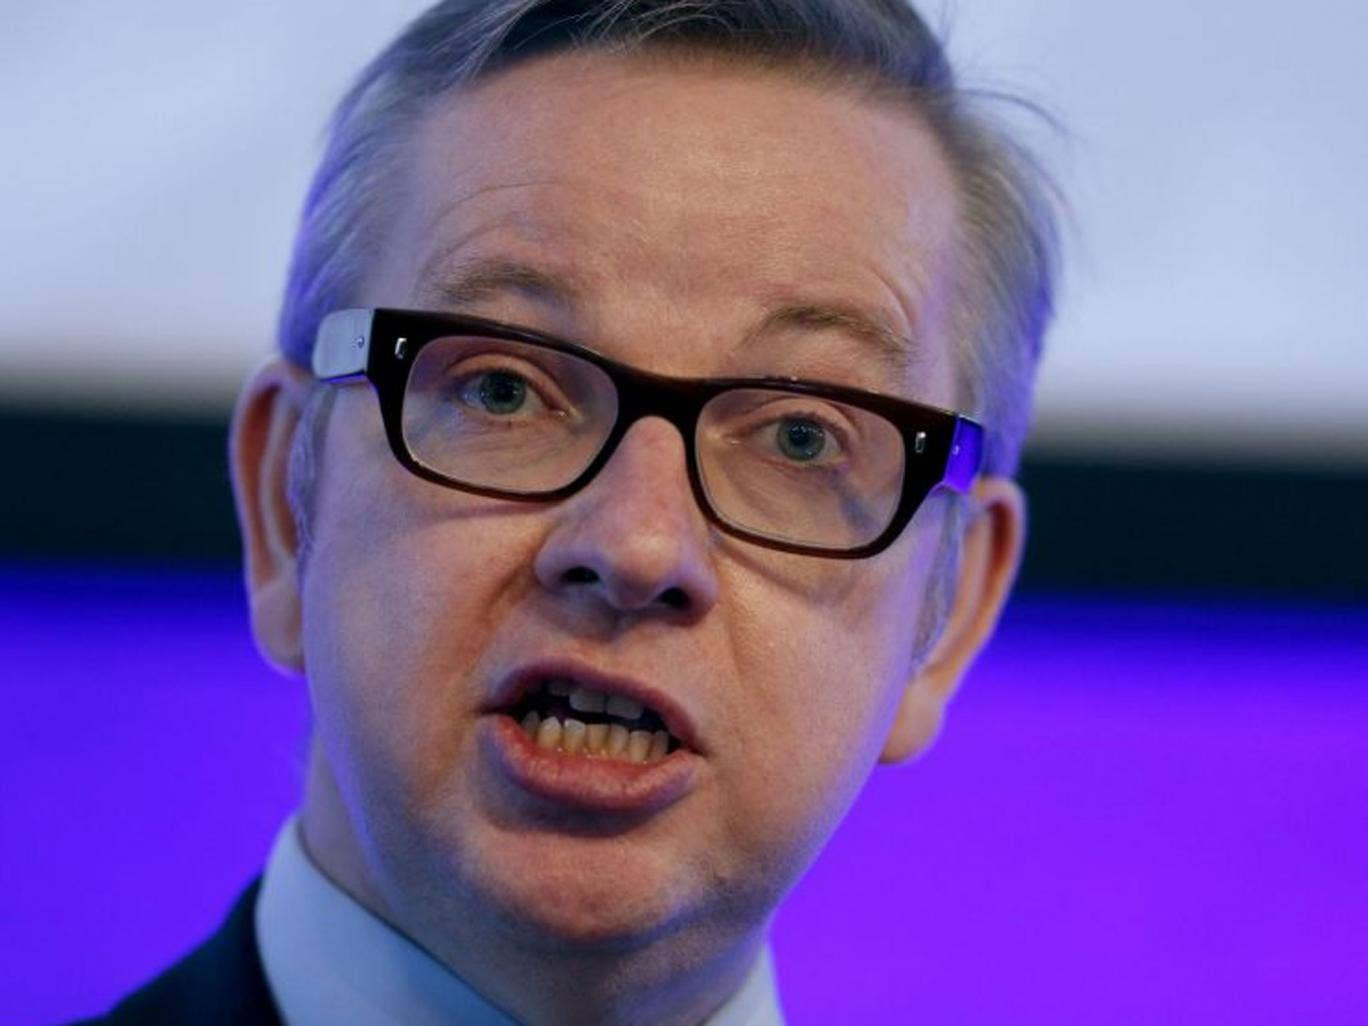 Cambridge University announced a review of its admissions procedures today in the wake of Education Secretary Michael Gove's A-level reforms